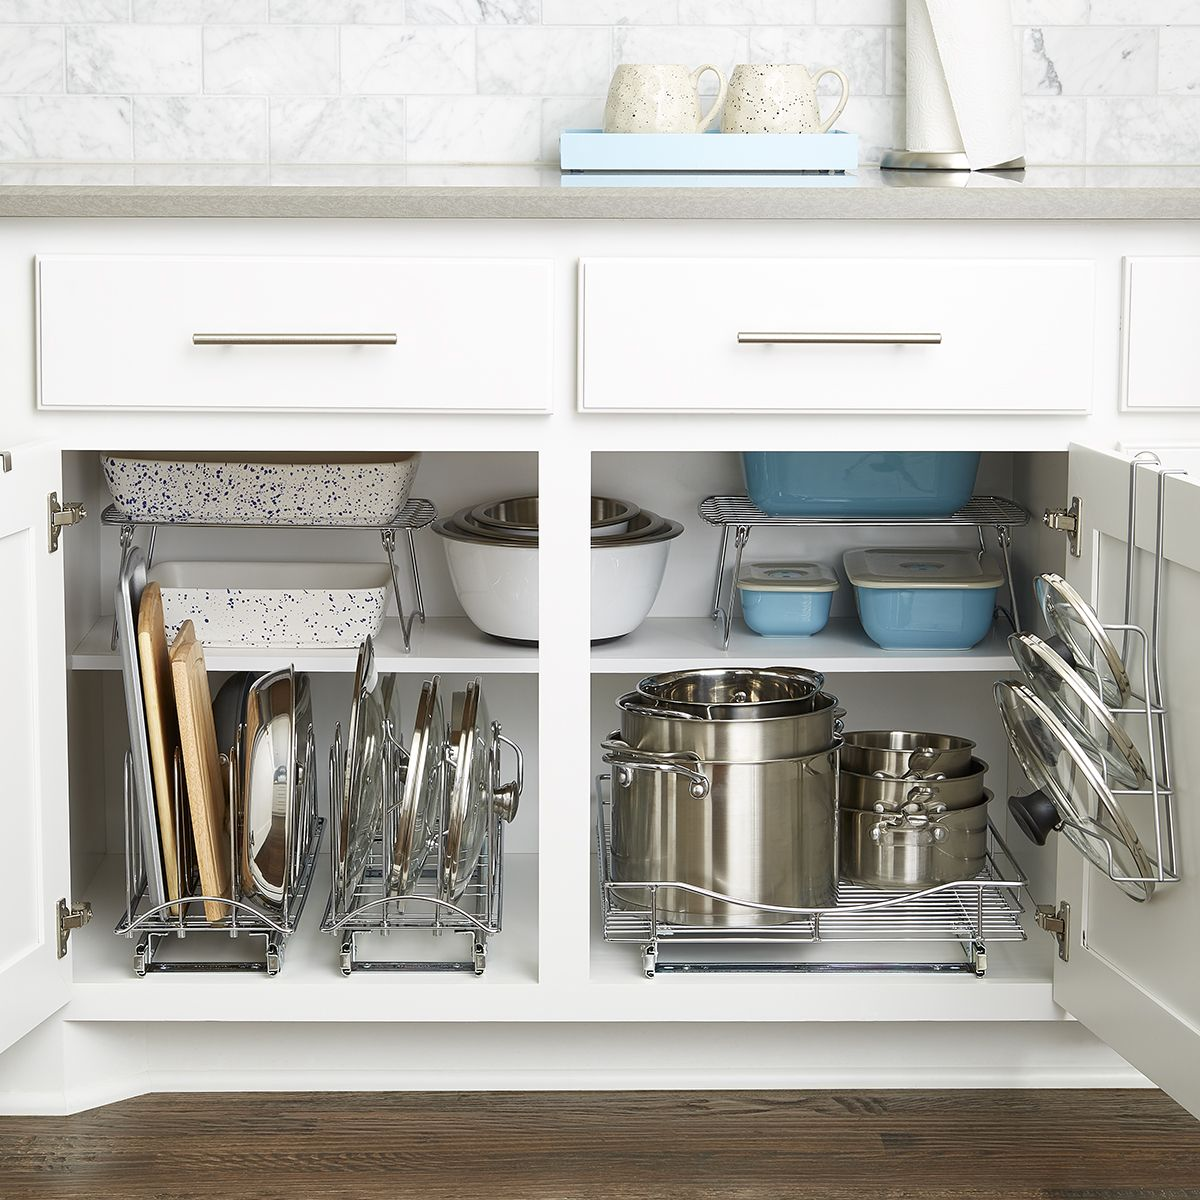 12 Genius Products To Help Organize Your Kitchen